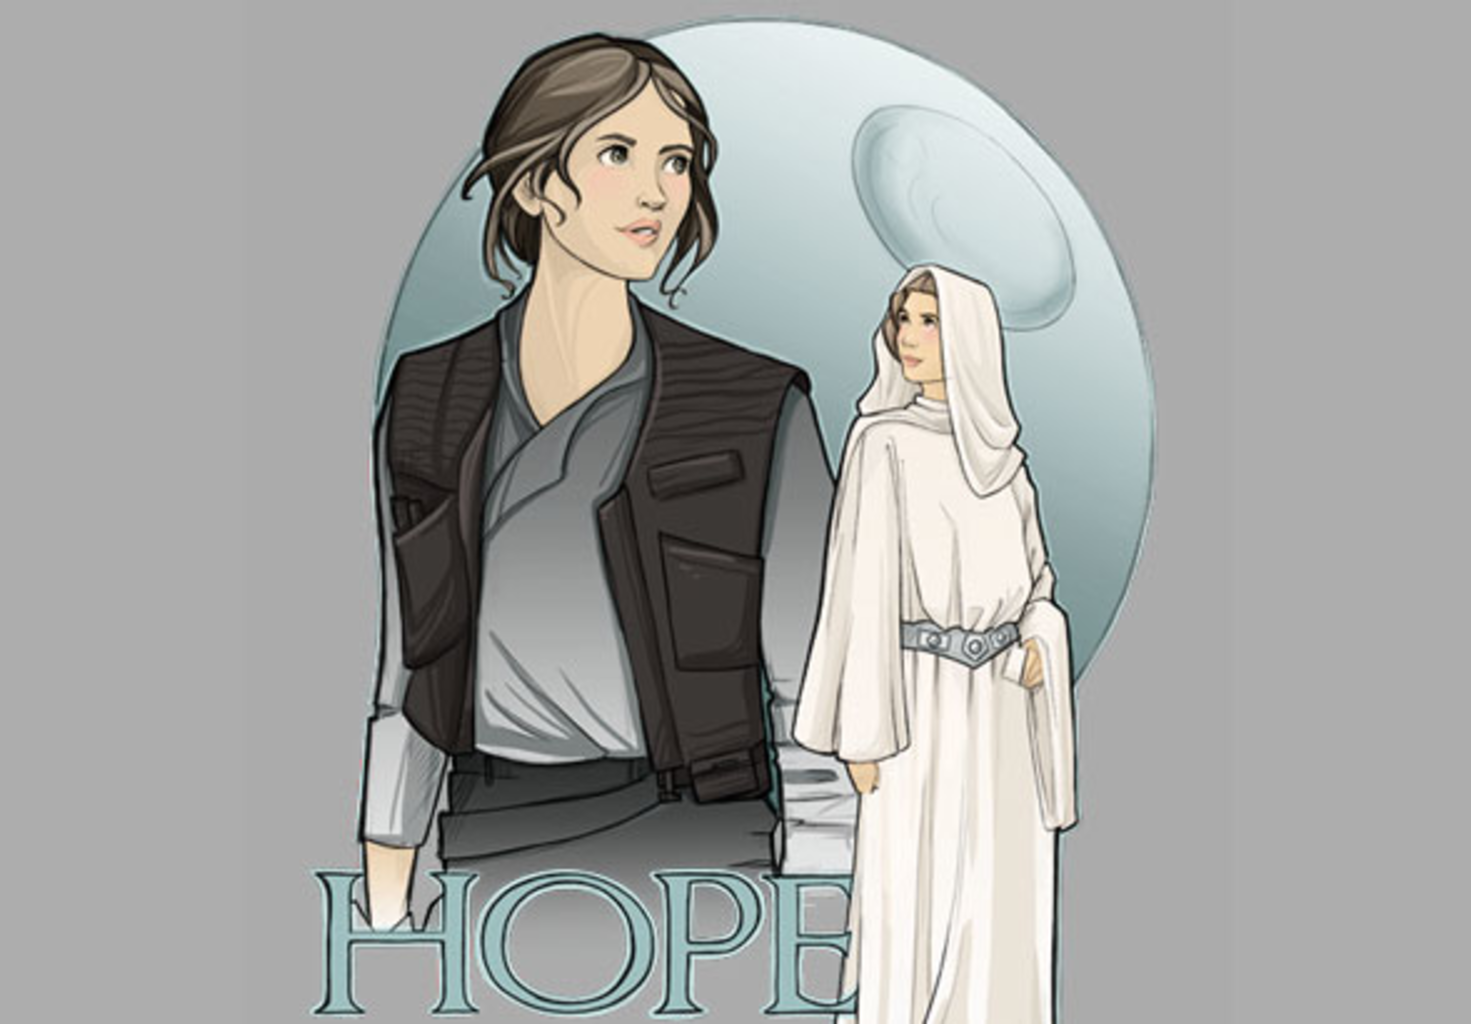 teeVillain: Karen Hallion's HOPE